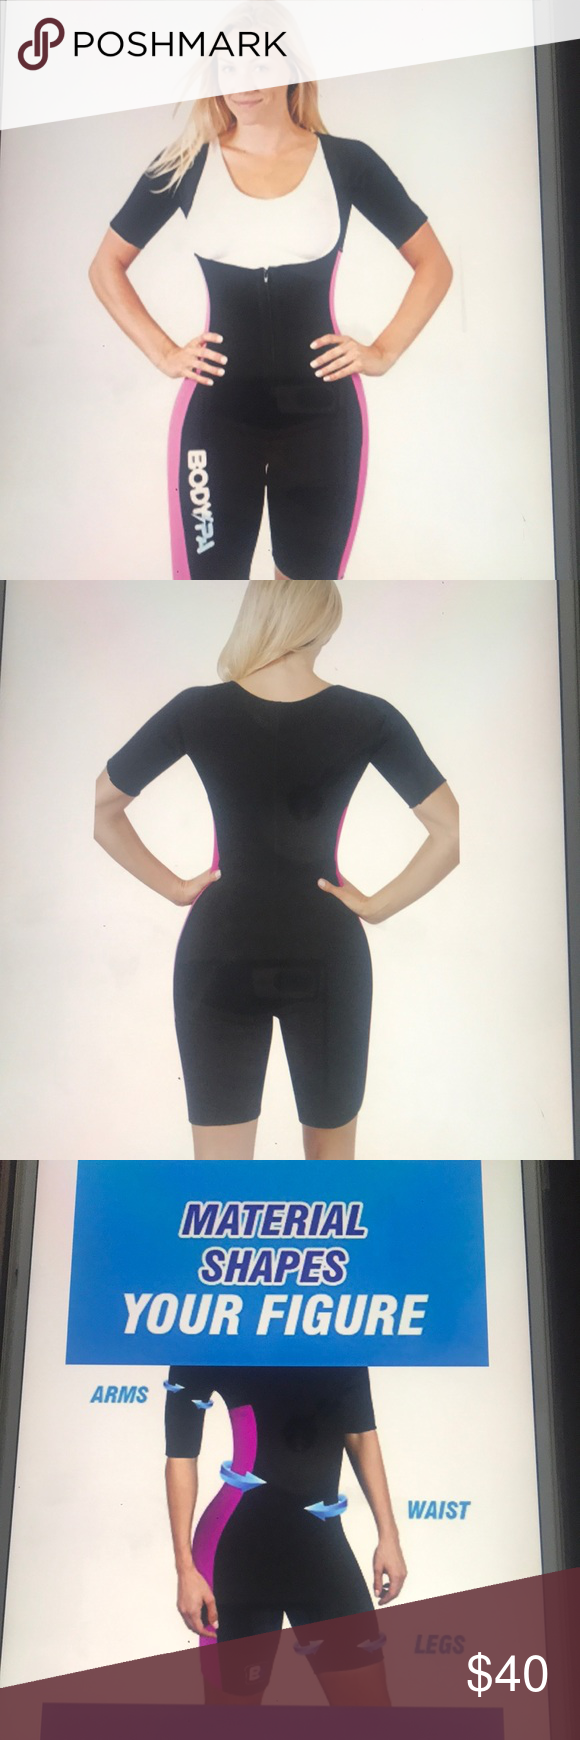 Spa Light Body Sauna Suit Full Body Shaper Light material and very comfortable.  Perfect to wear during any workout or just to wear under your clothes doing everyday activities. You will sweat more than usual increase your body heat and metabolism.  Detoxify your immune system.  Burn more calories. Never been worn Bodyspa Other